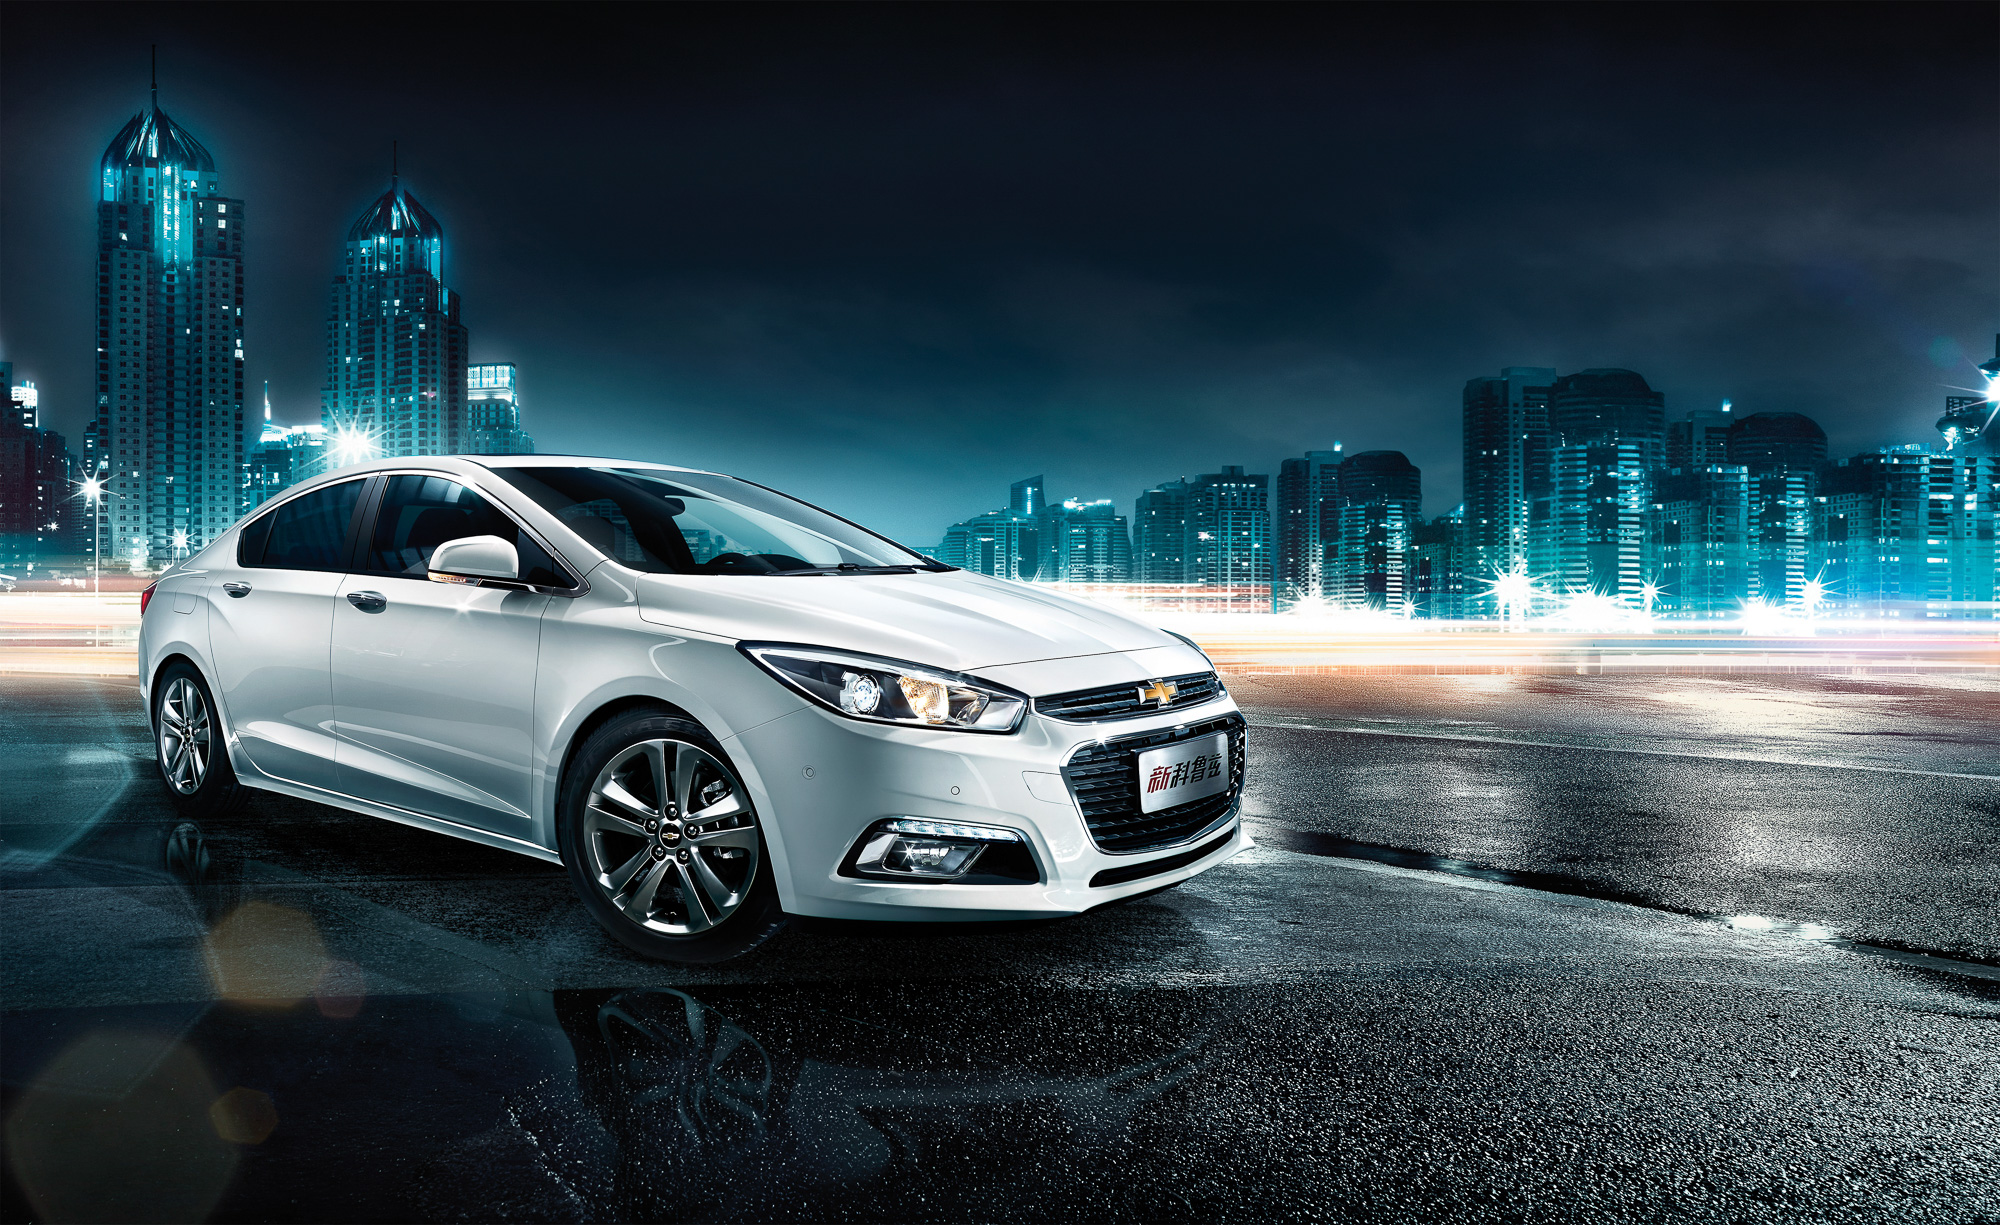 Migs Foto Cgi Hong Kong Car Automotive Photography